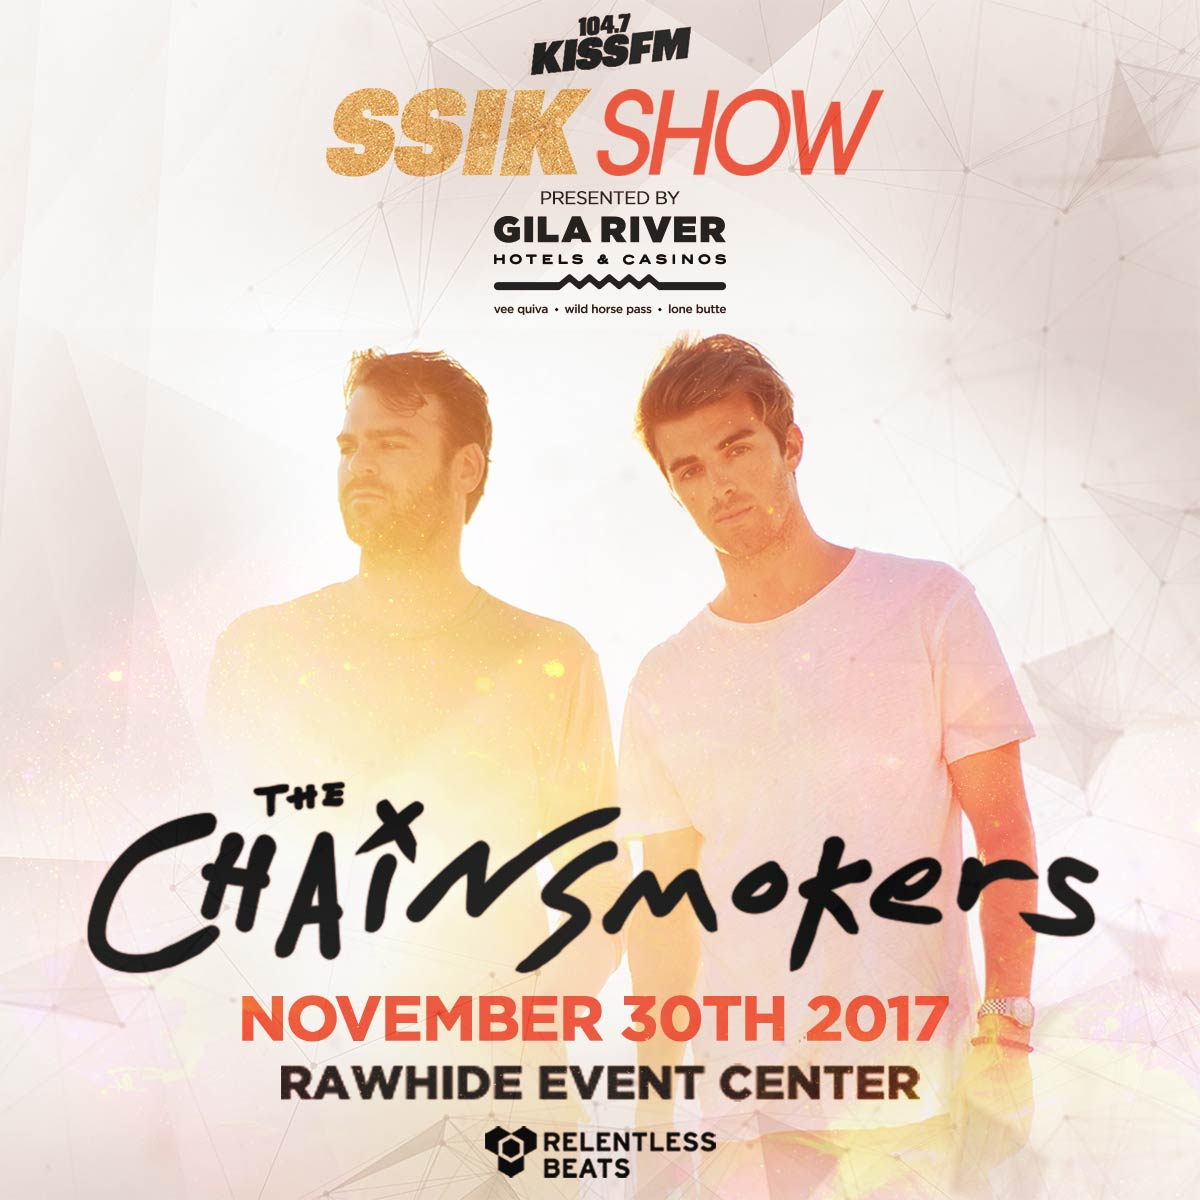 Flyer for KISS FM SSIK Show ft. The Chainsmokers